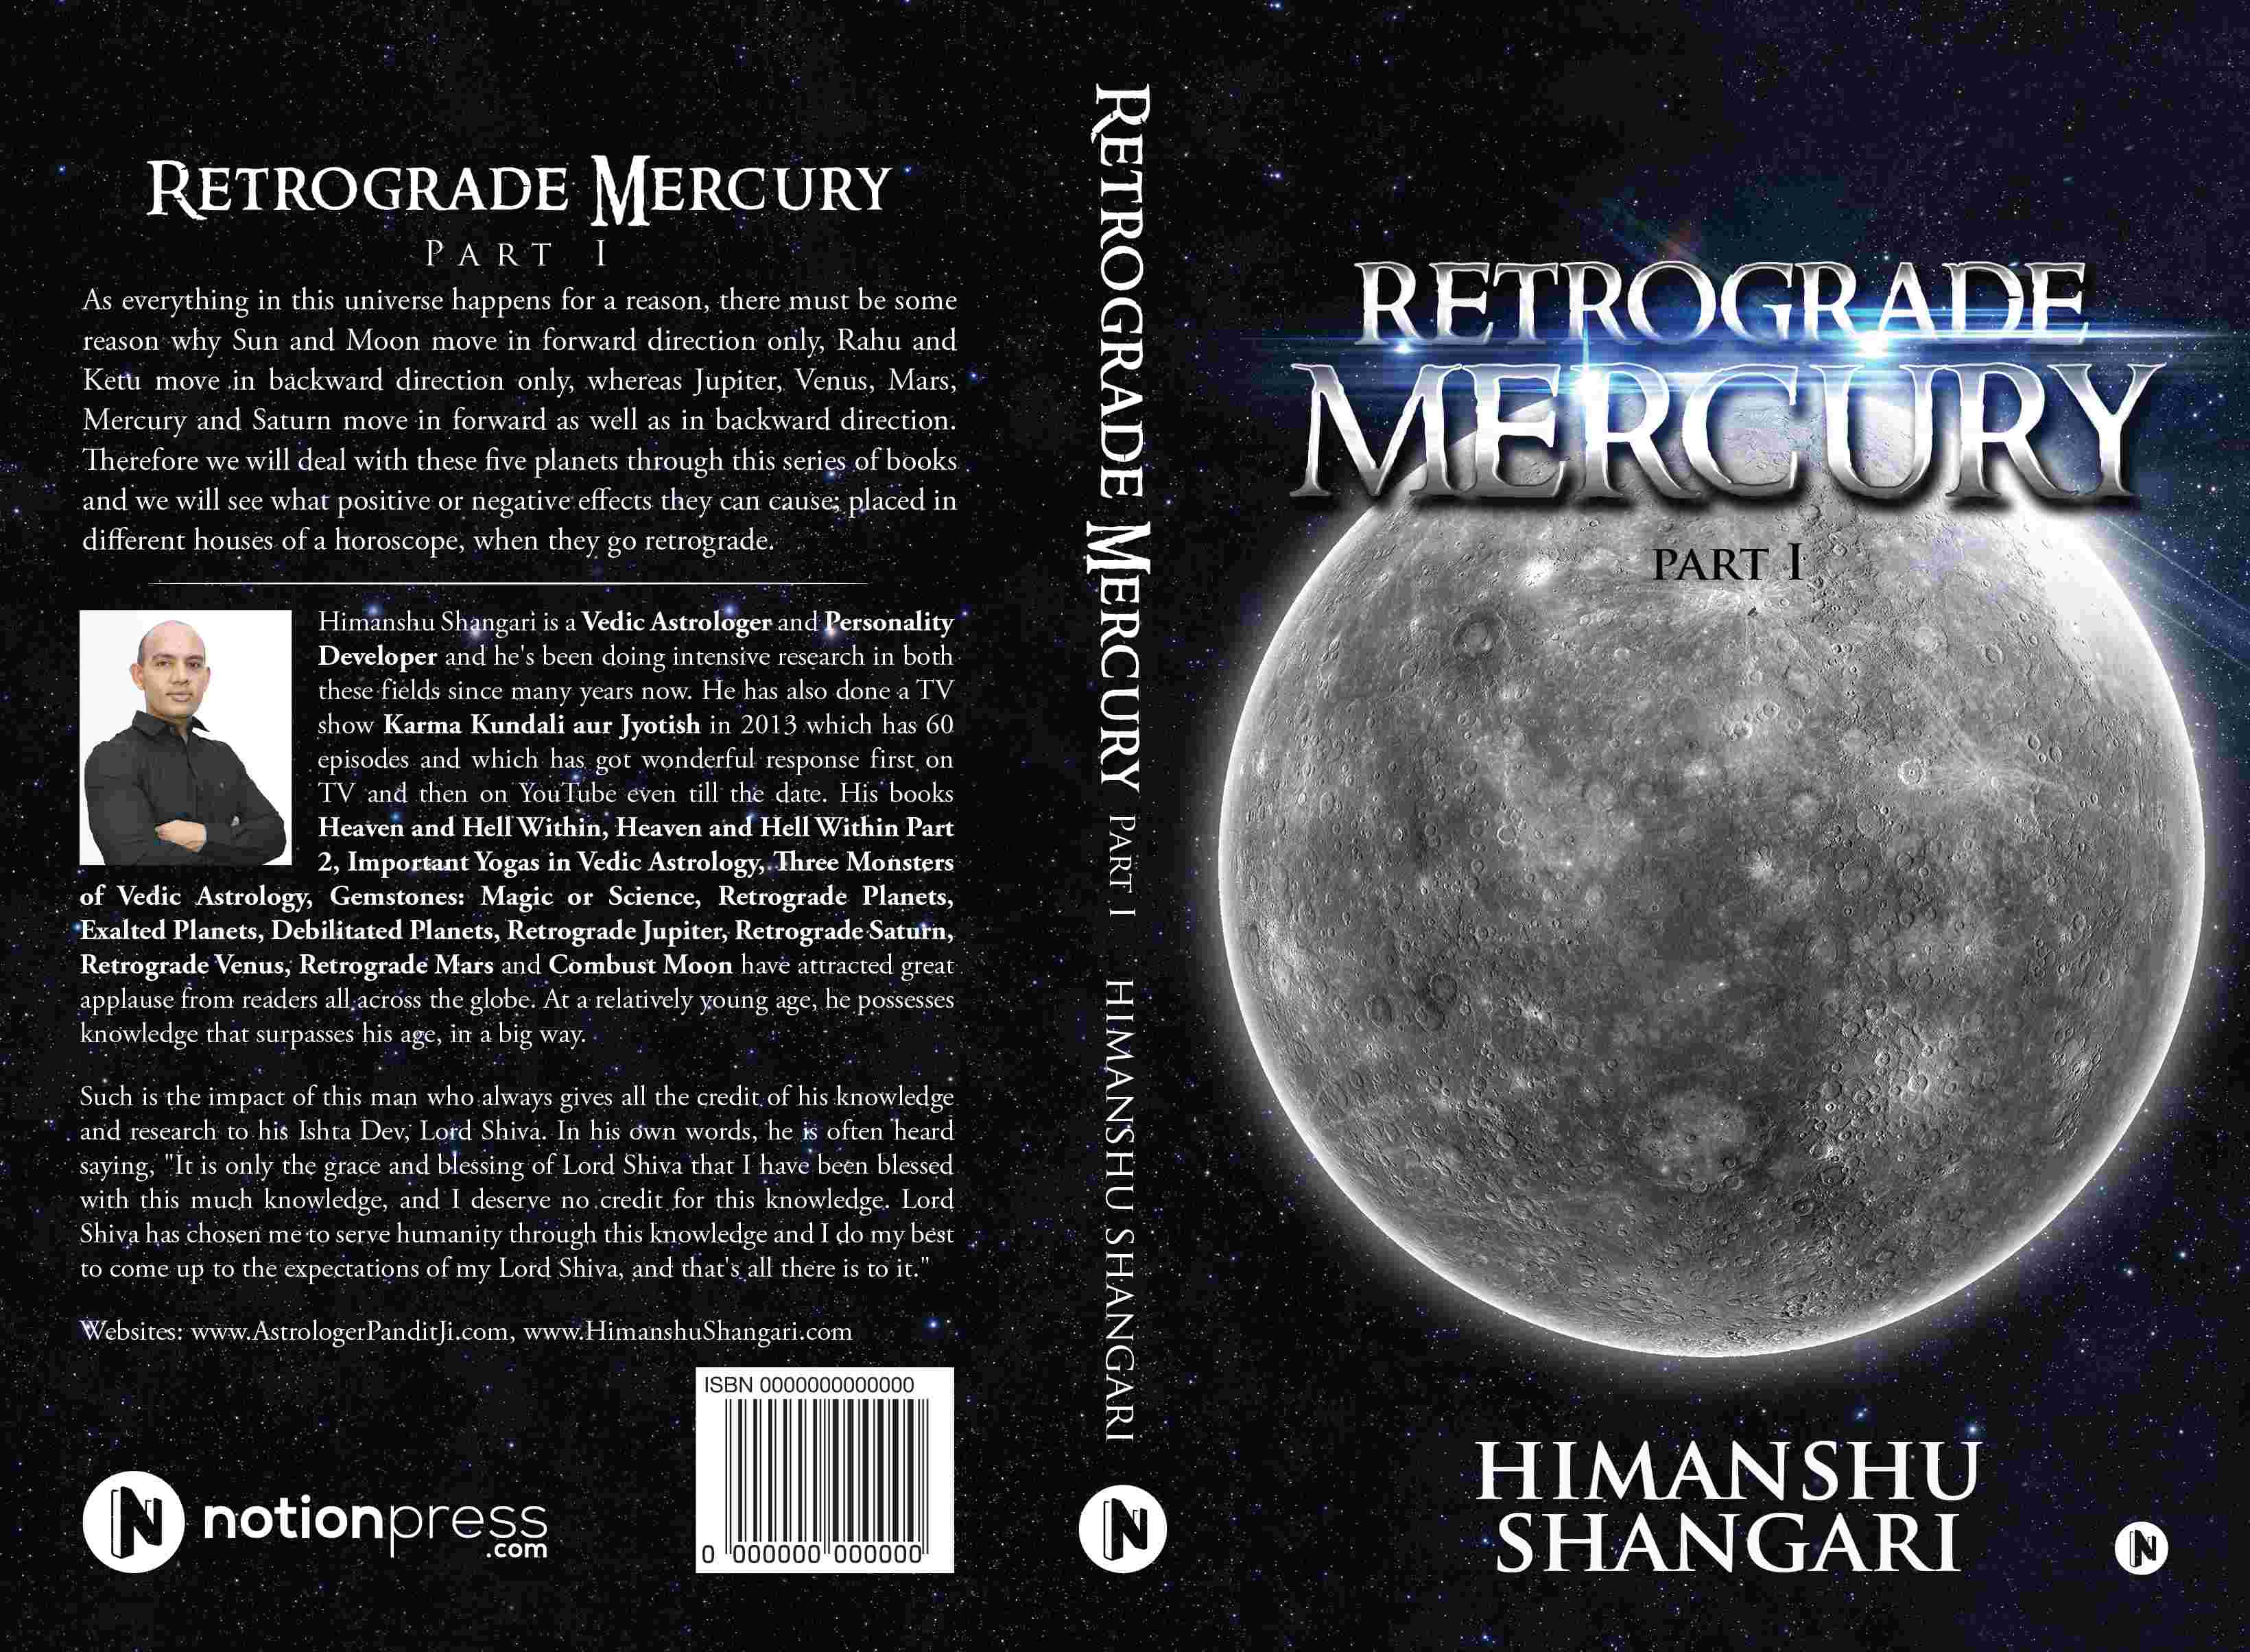 Retrograde Mercury Part 1